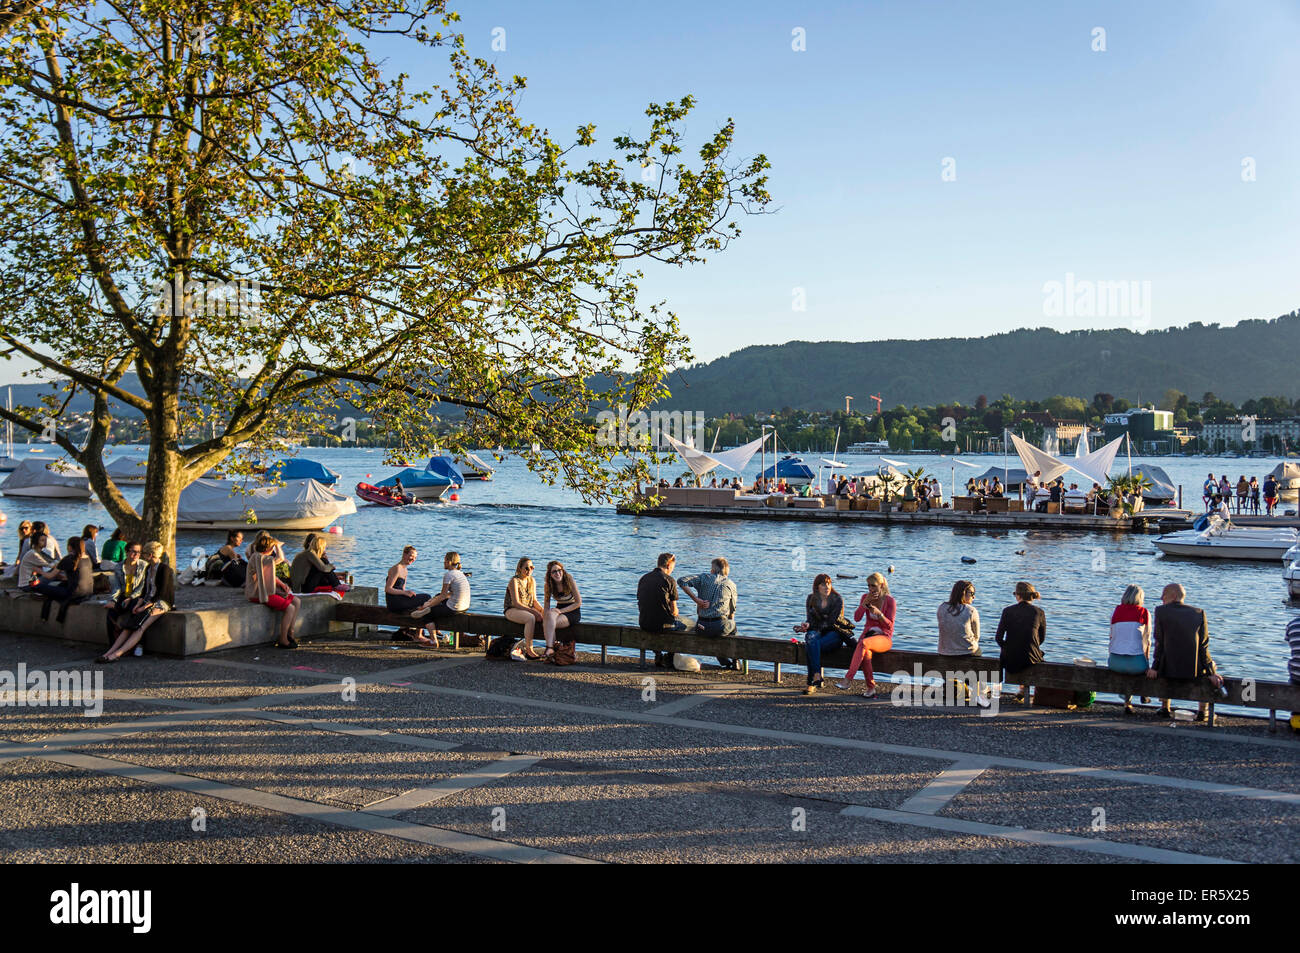 lake Zurich promenade, Zurich, Switzerland - Stock Image